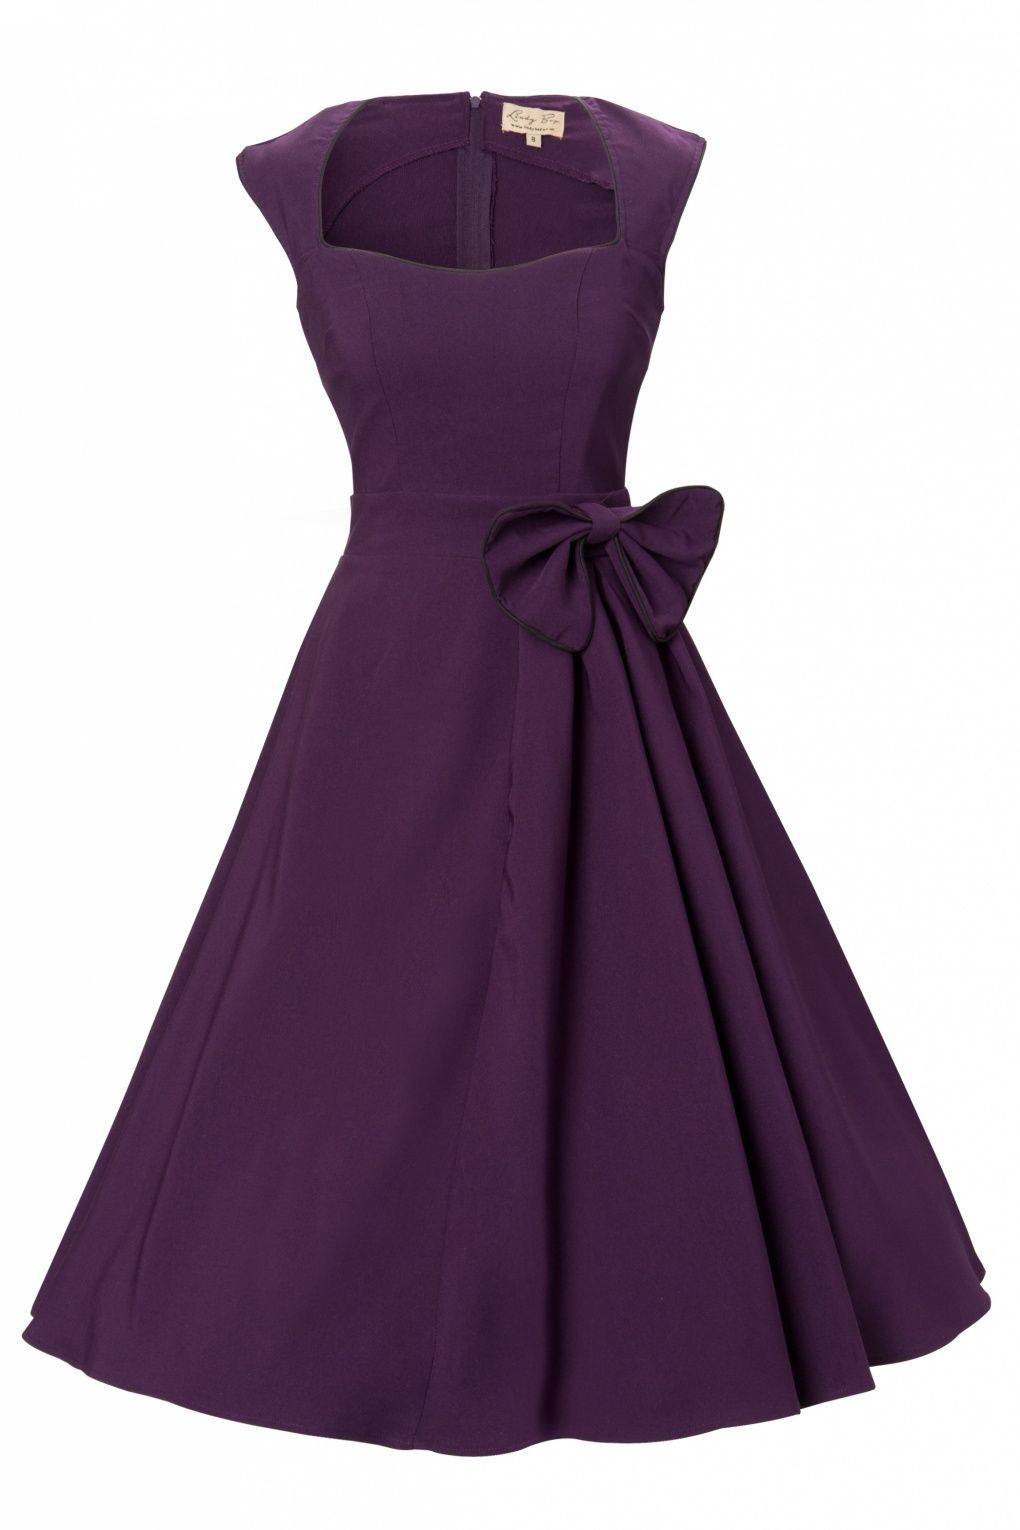 1950 s Grace Purple Bow vintage style swing party rockabilly evening ... 7a47d0aee3ef